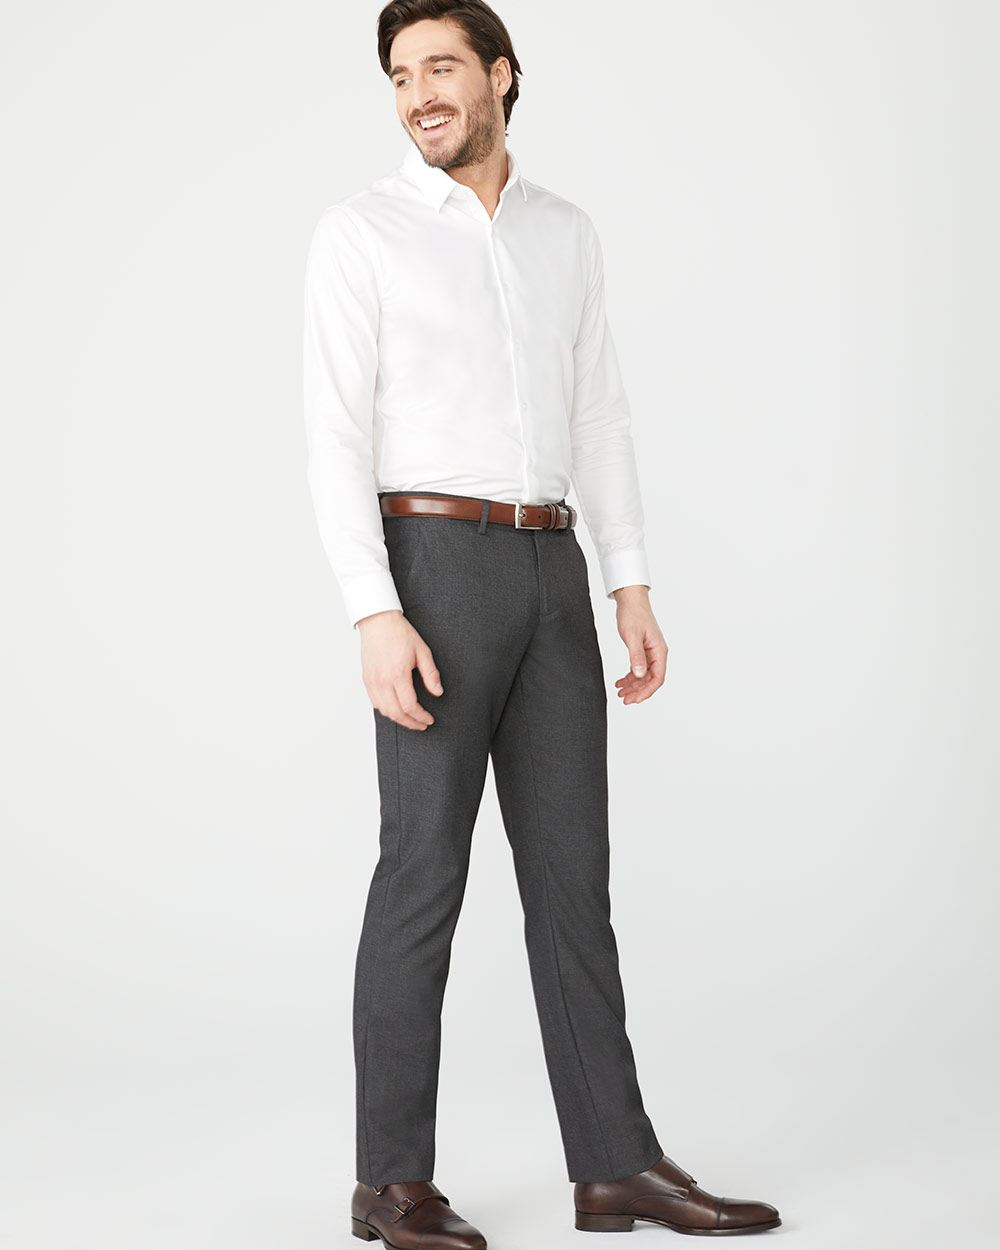 Coupe Ajustée Pantalon De Ville Coupe Ajustée 34 Rw Co